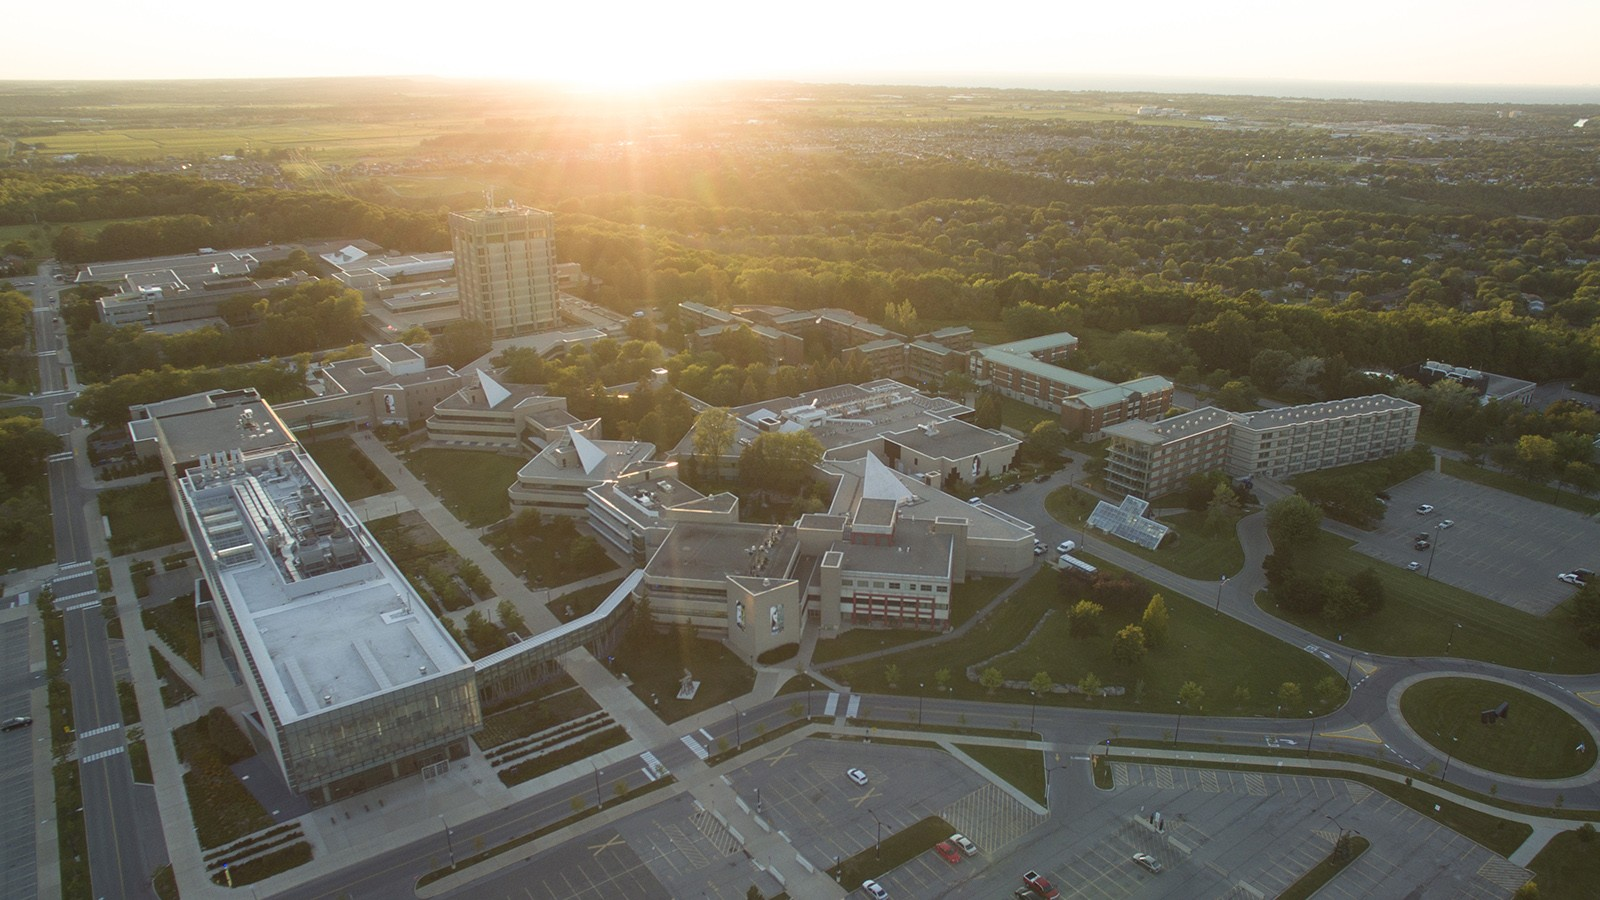 An aerial view of the Brock University campus at sunset.